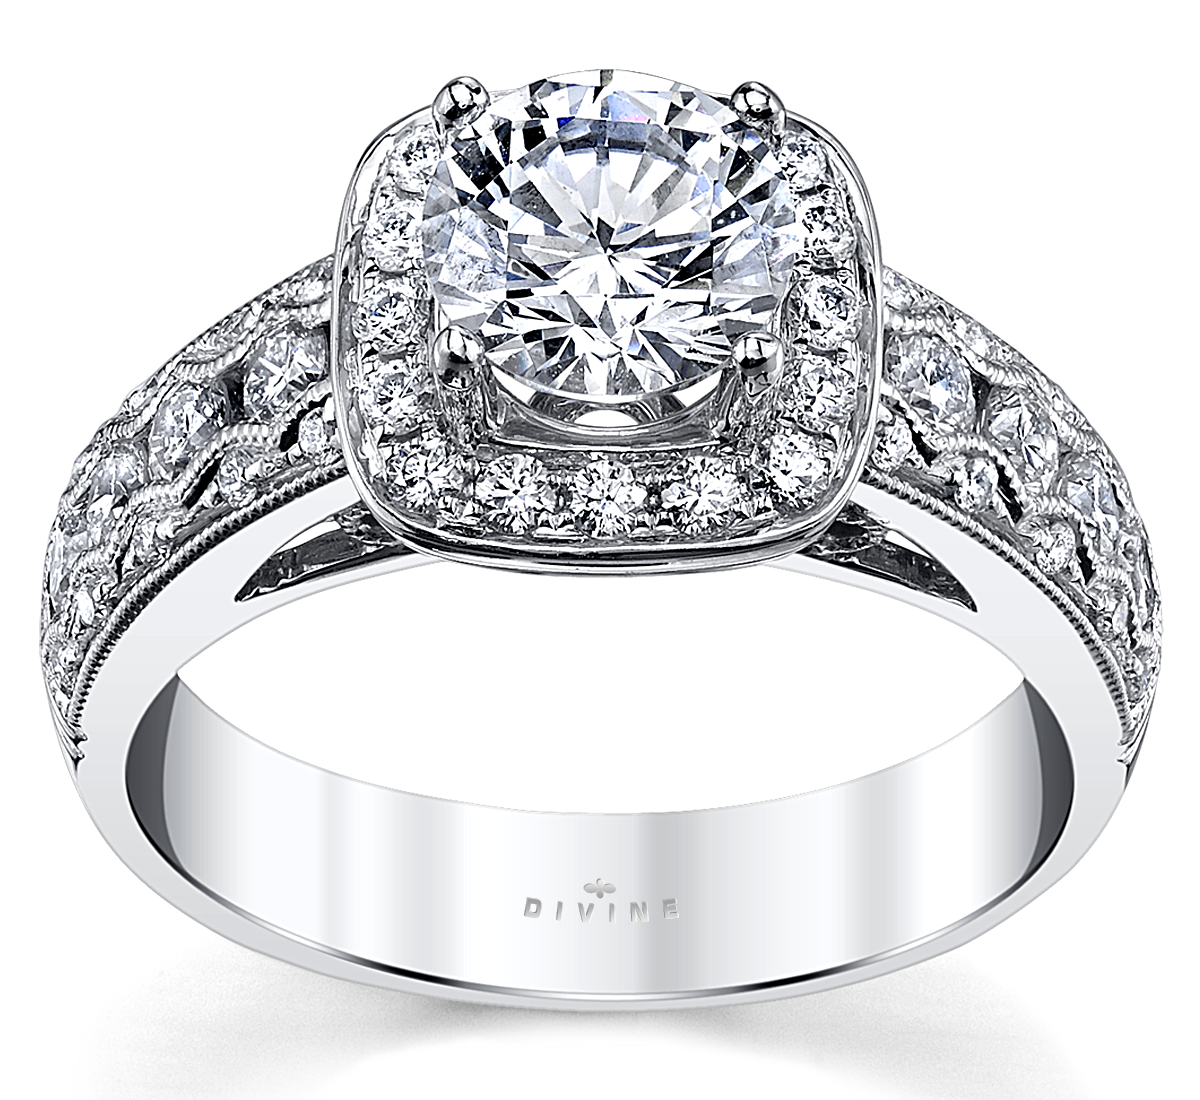 pave collections in sea engagement made cut diamonds halo set dimond york ring best custom shop new wave diamond products district round rings